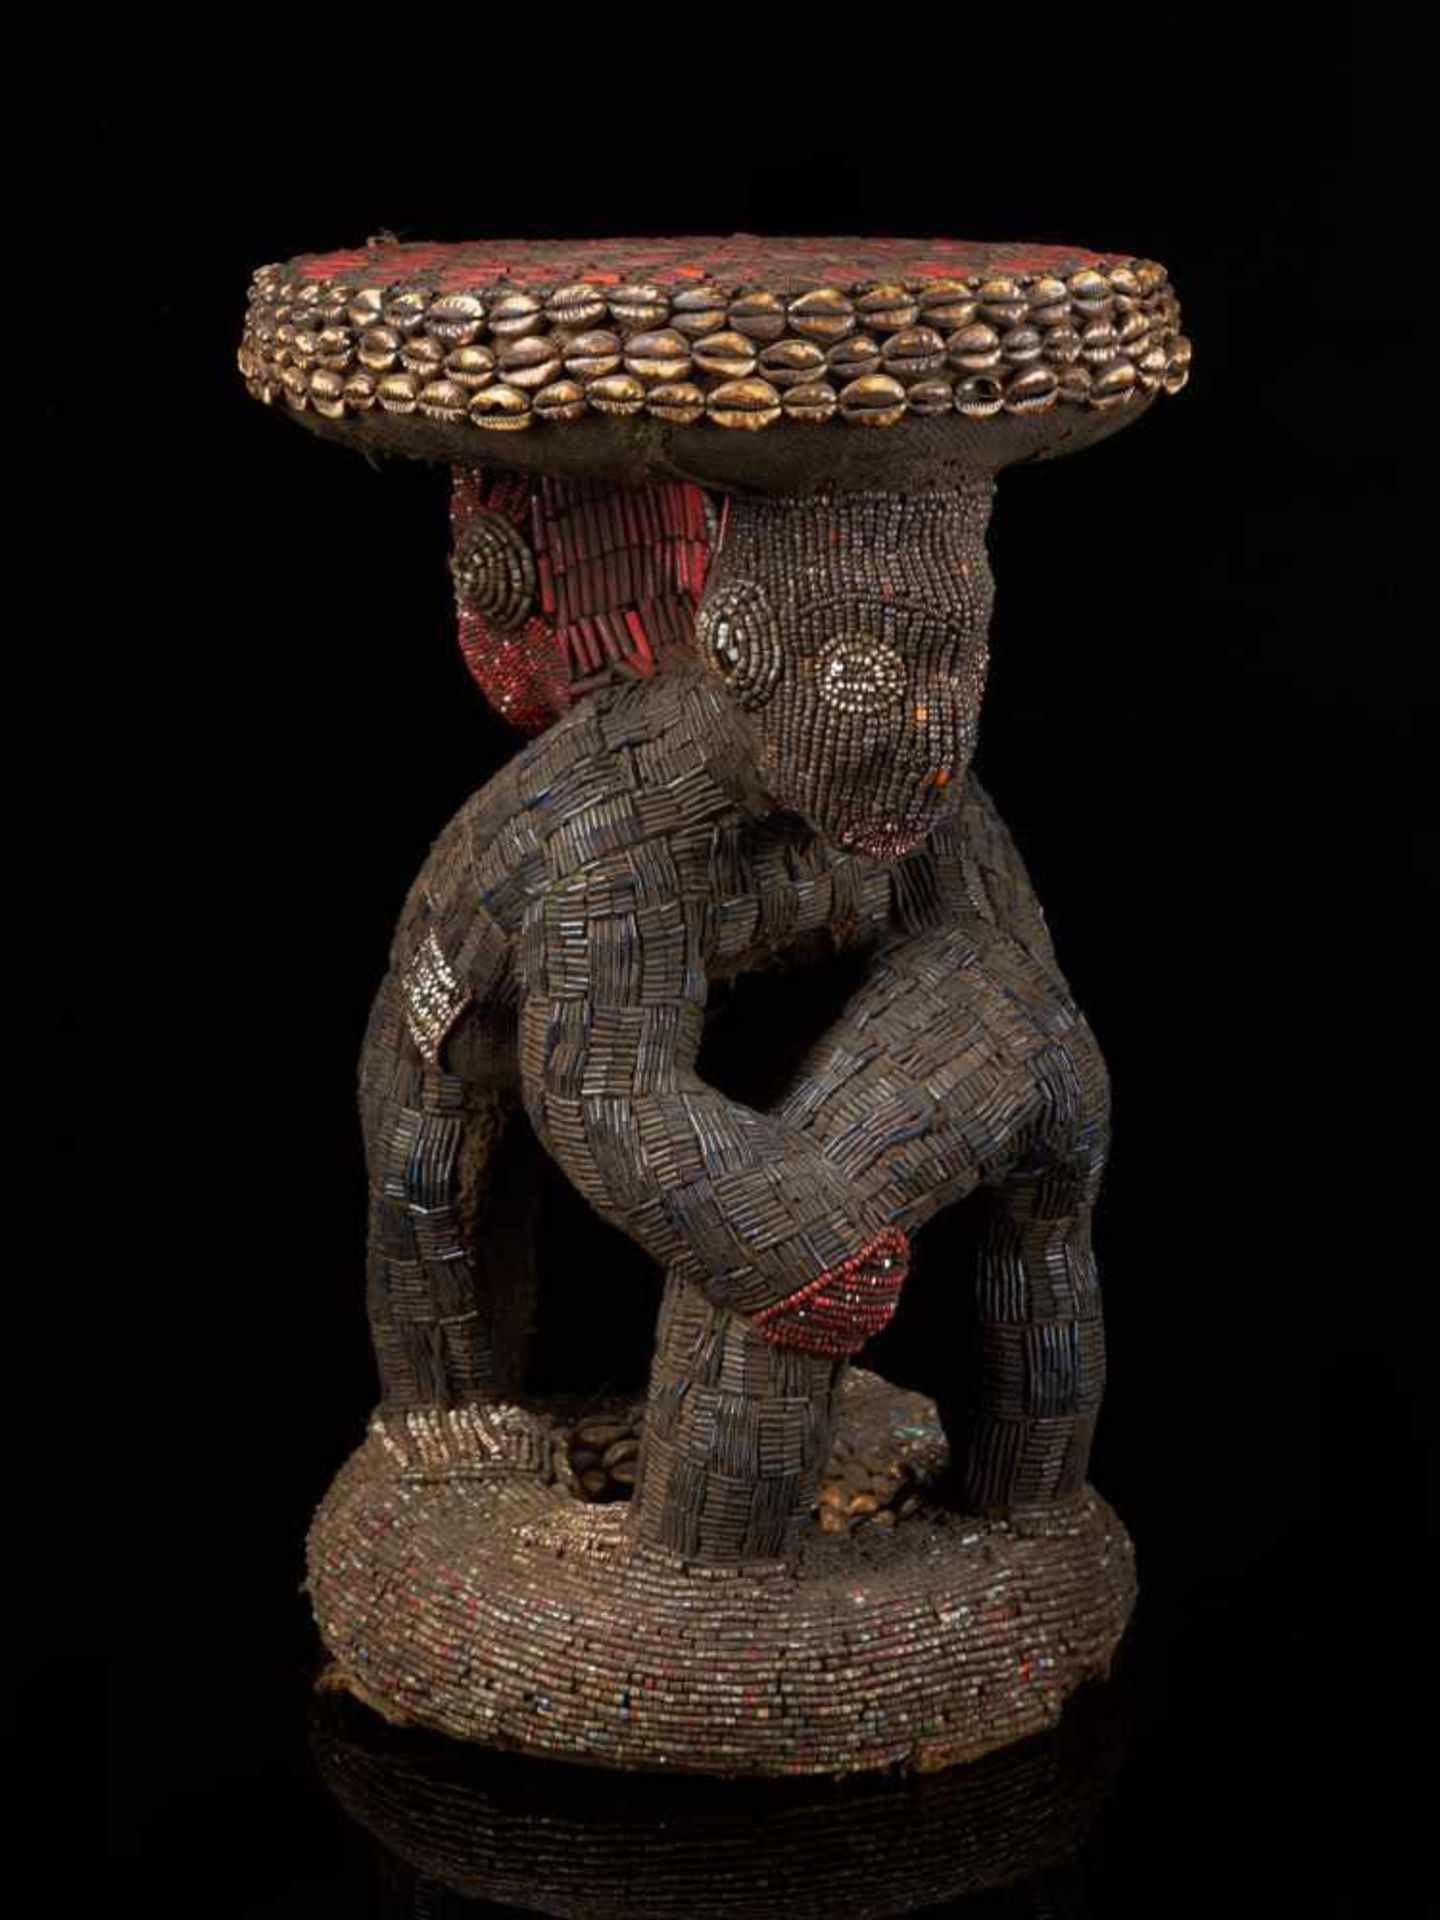 Beaded Royal Stool Supported By Two Figures - Tribal ArtThis exquisite stool has a round base and - Bild 3 aus 5